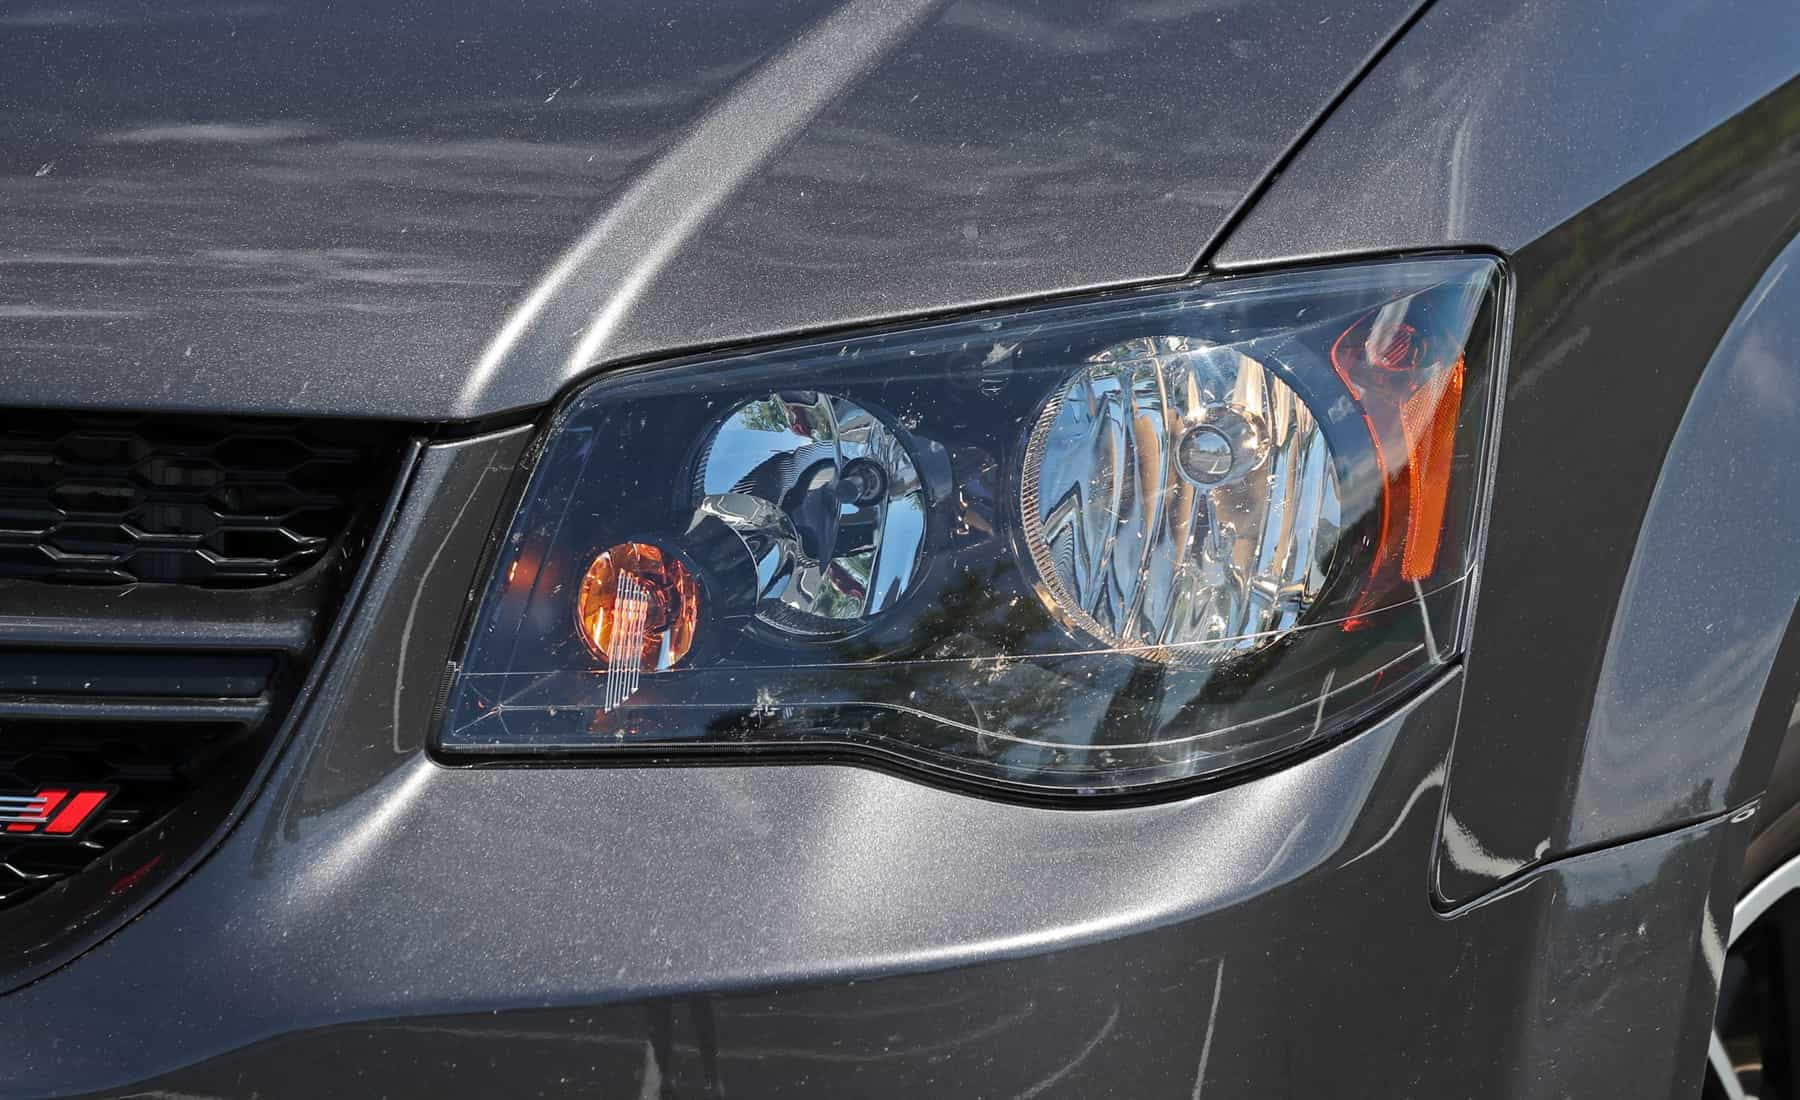 2017 Dodge Grand Caravan Exterior View Headlight (Photo 13 of 47)